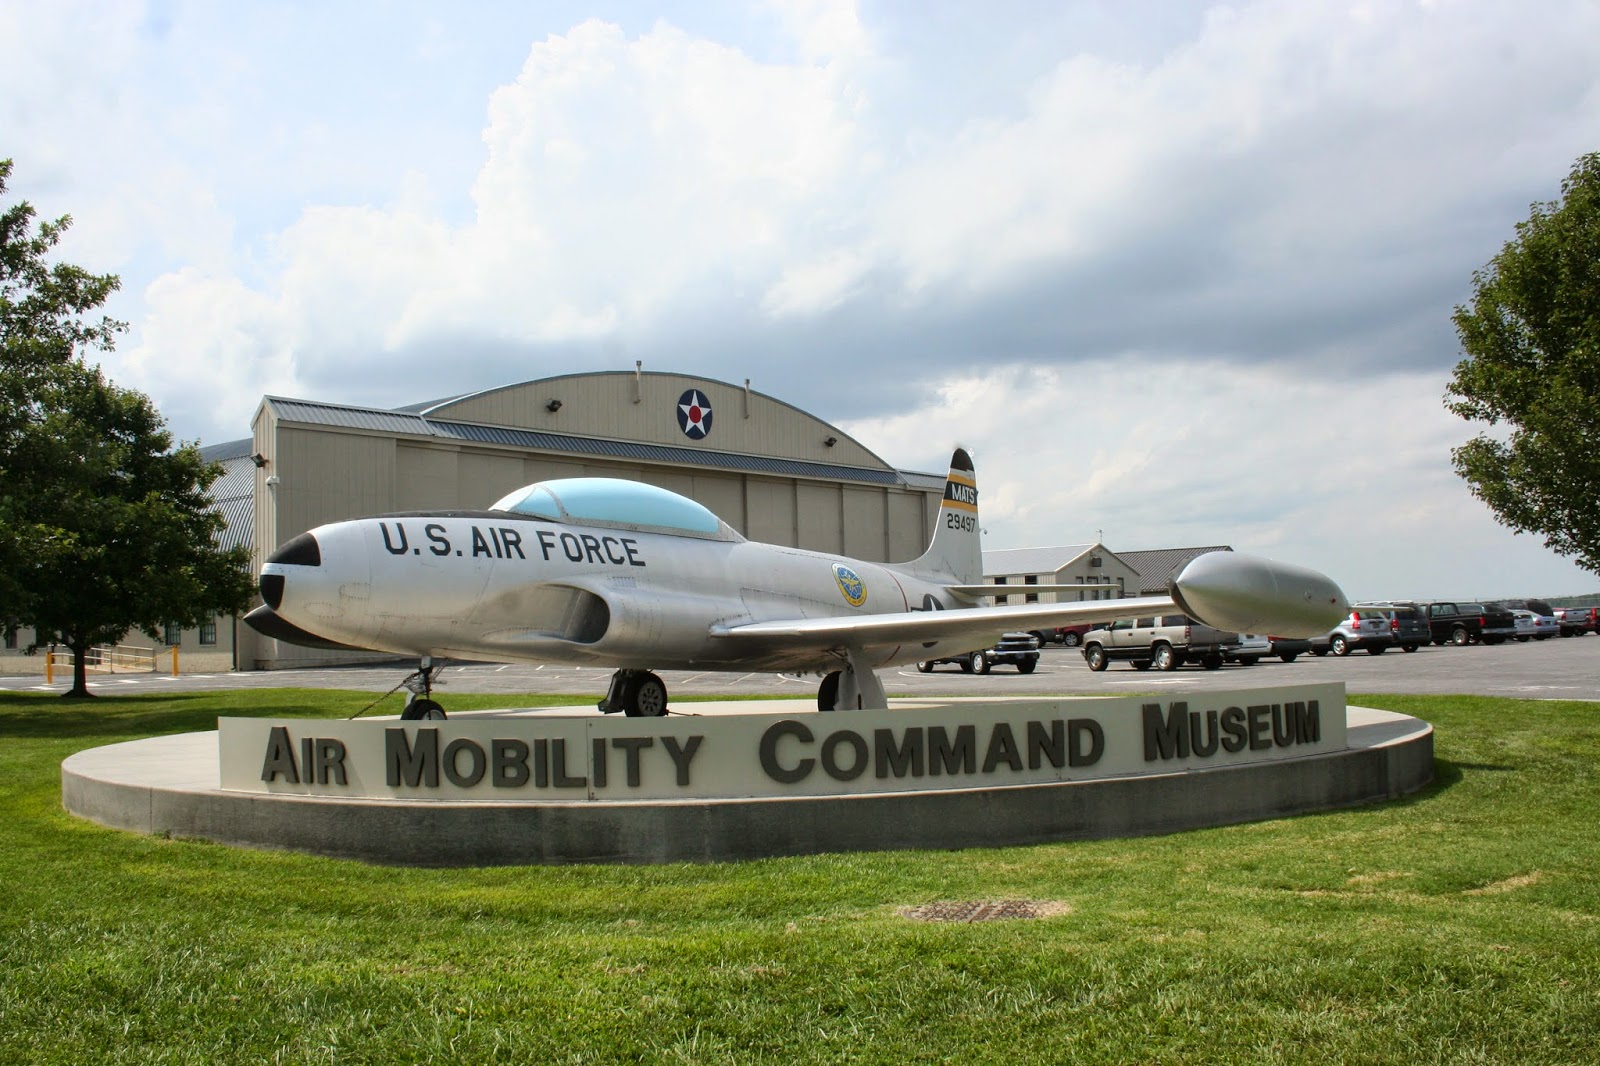 Dover Air Mobility Command Museum Is Located At 1301 Heritage Raod The Force Base In Delaware It Just Off Route 1